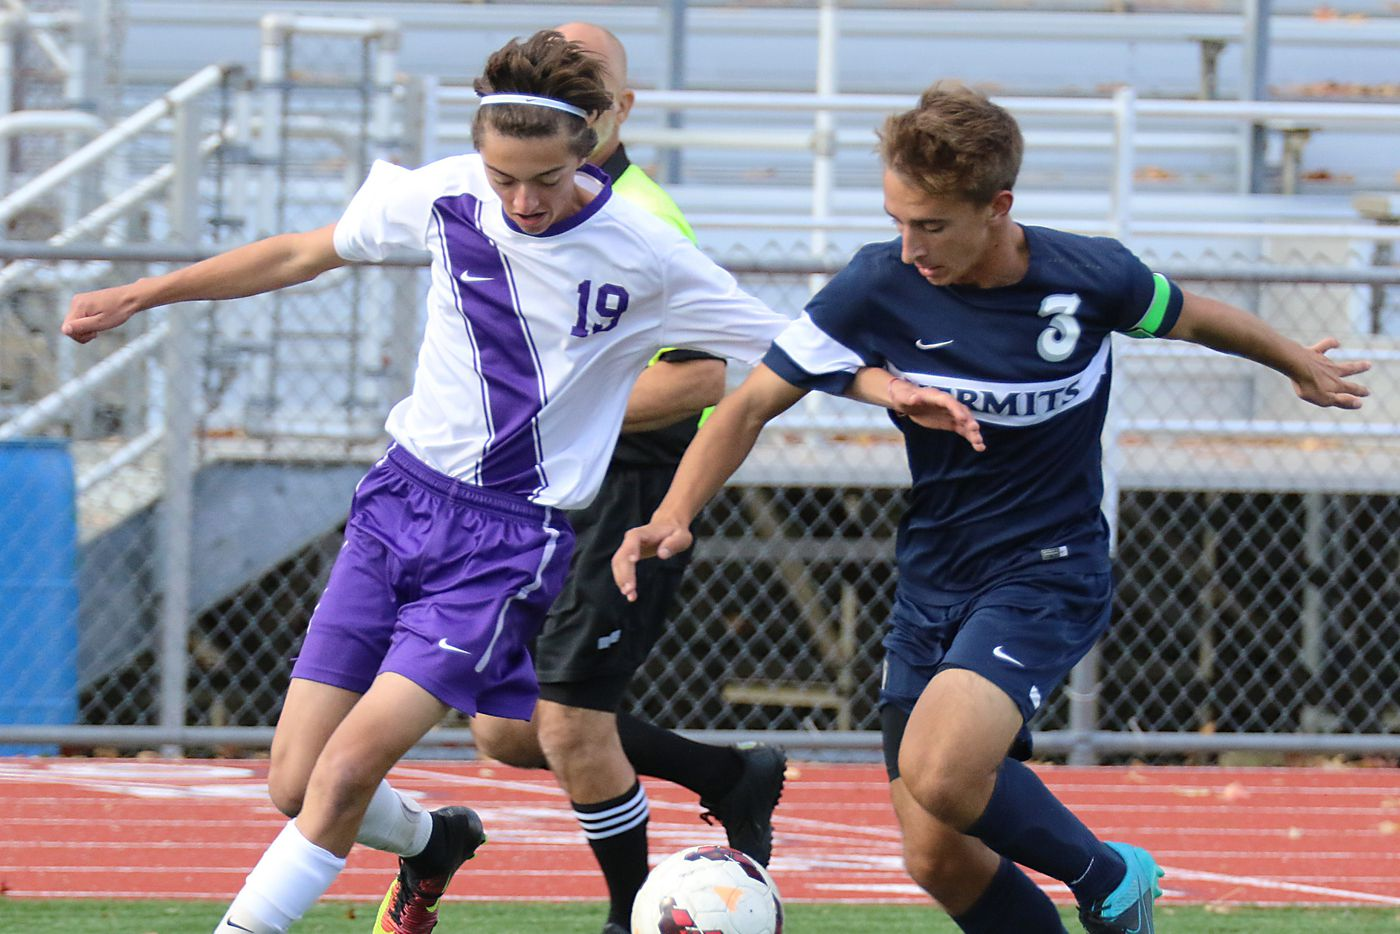 Thursday's South Jersey roundup: Cherry Hill East boys' soccer beats Shawnee in double overtime